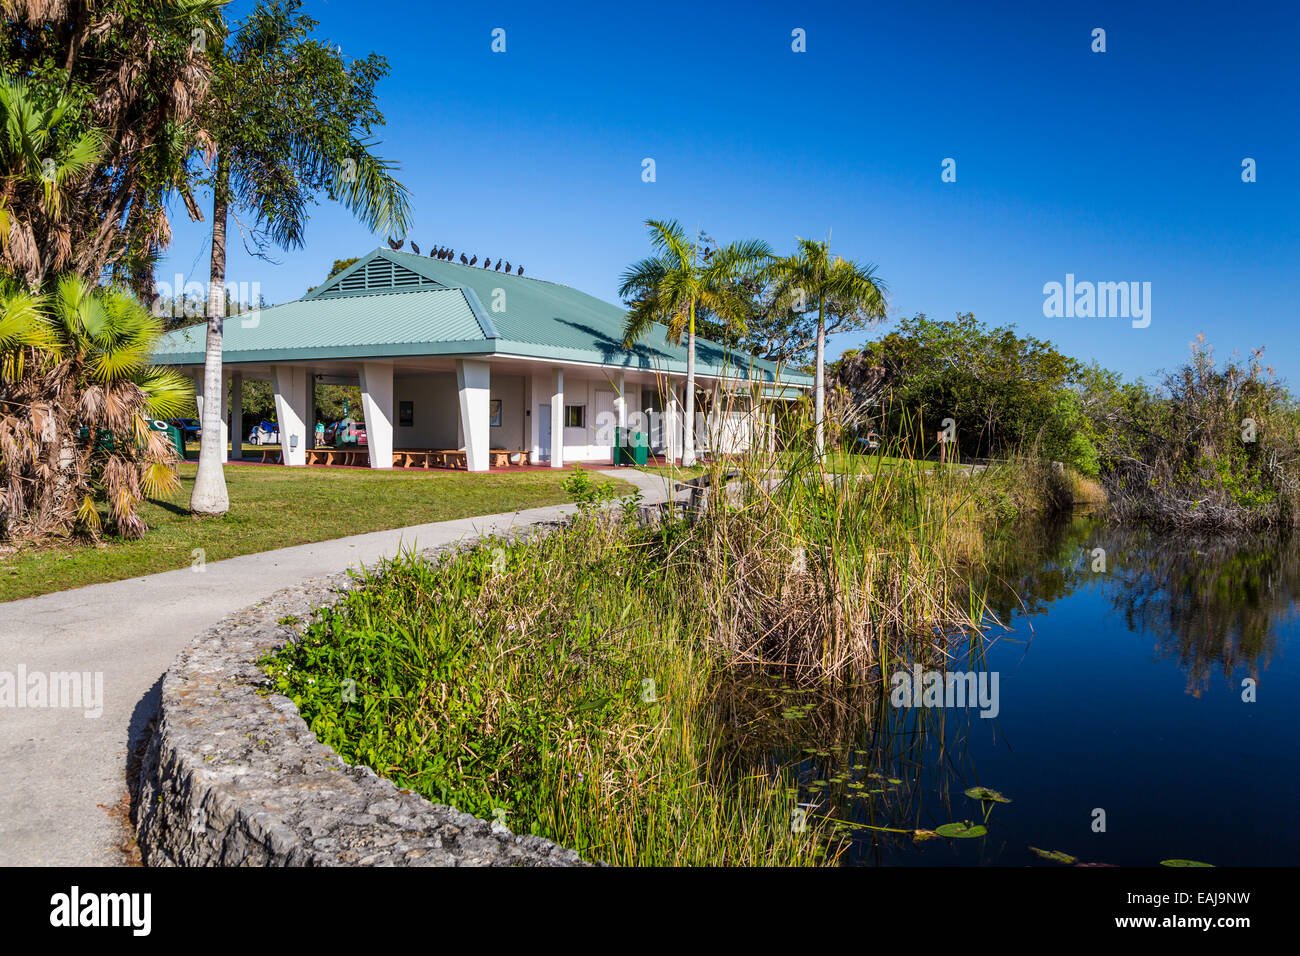 The visitors center along the Anhinga Trail in Everglades National Park, Florida, USA. - Stock Image